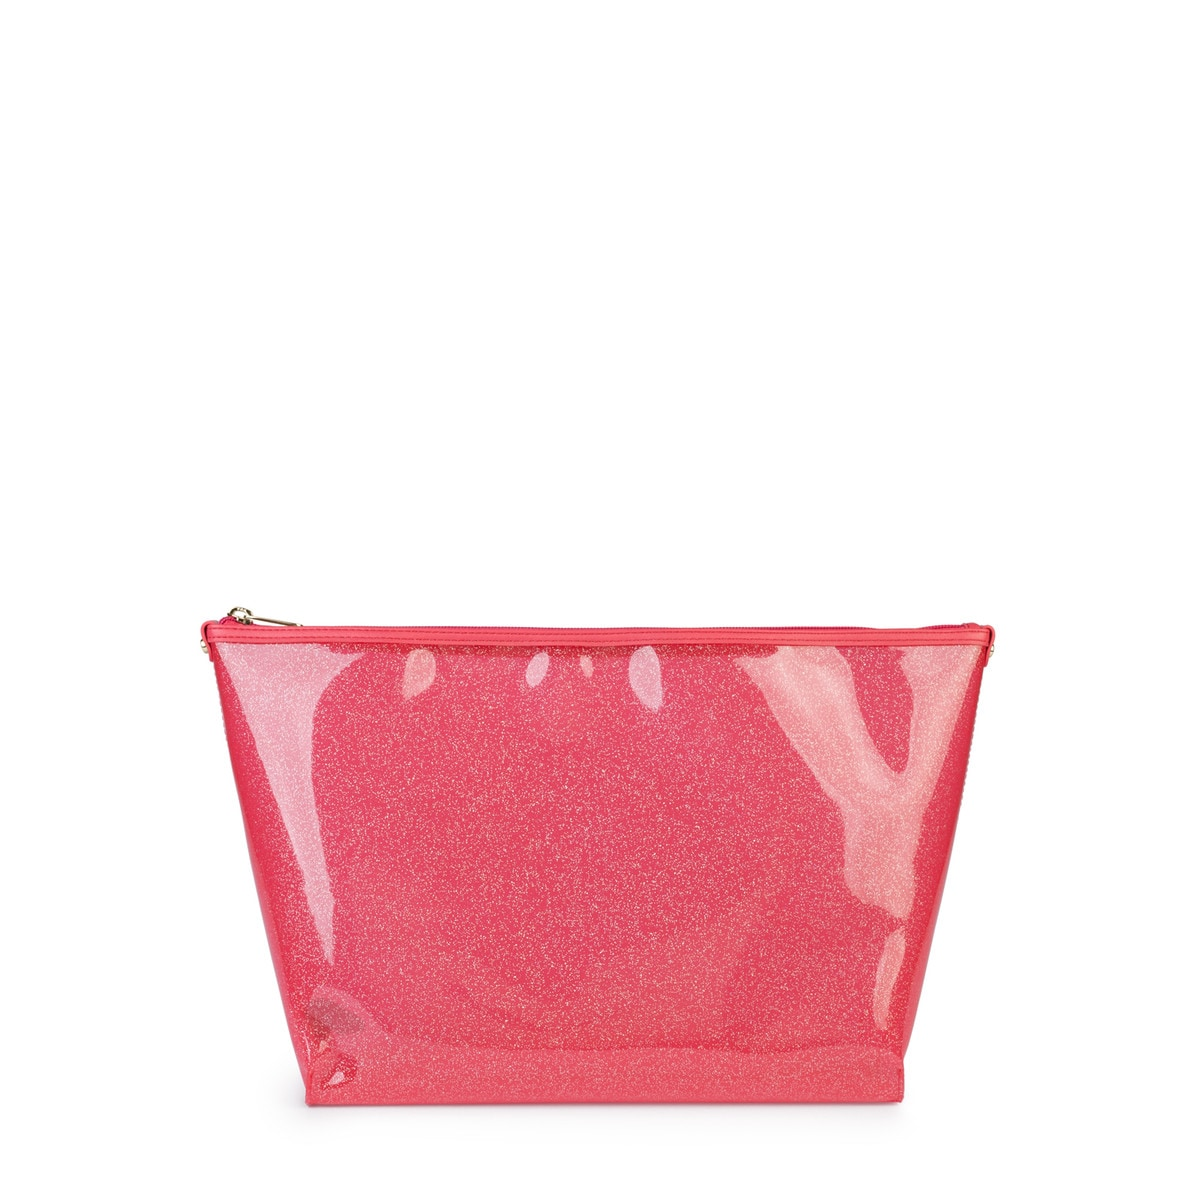 Medium coral colored Vinyl Kaos Shock Handbag